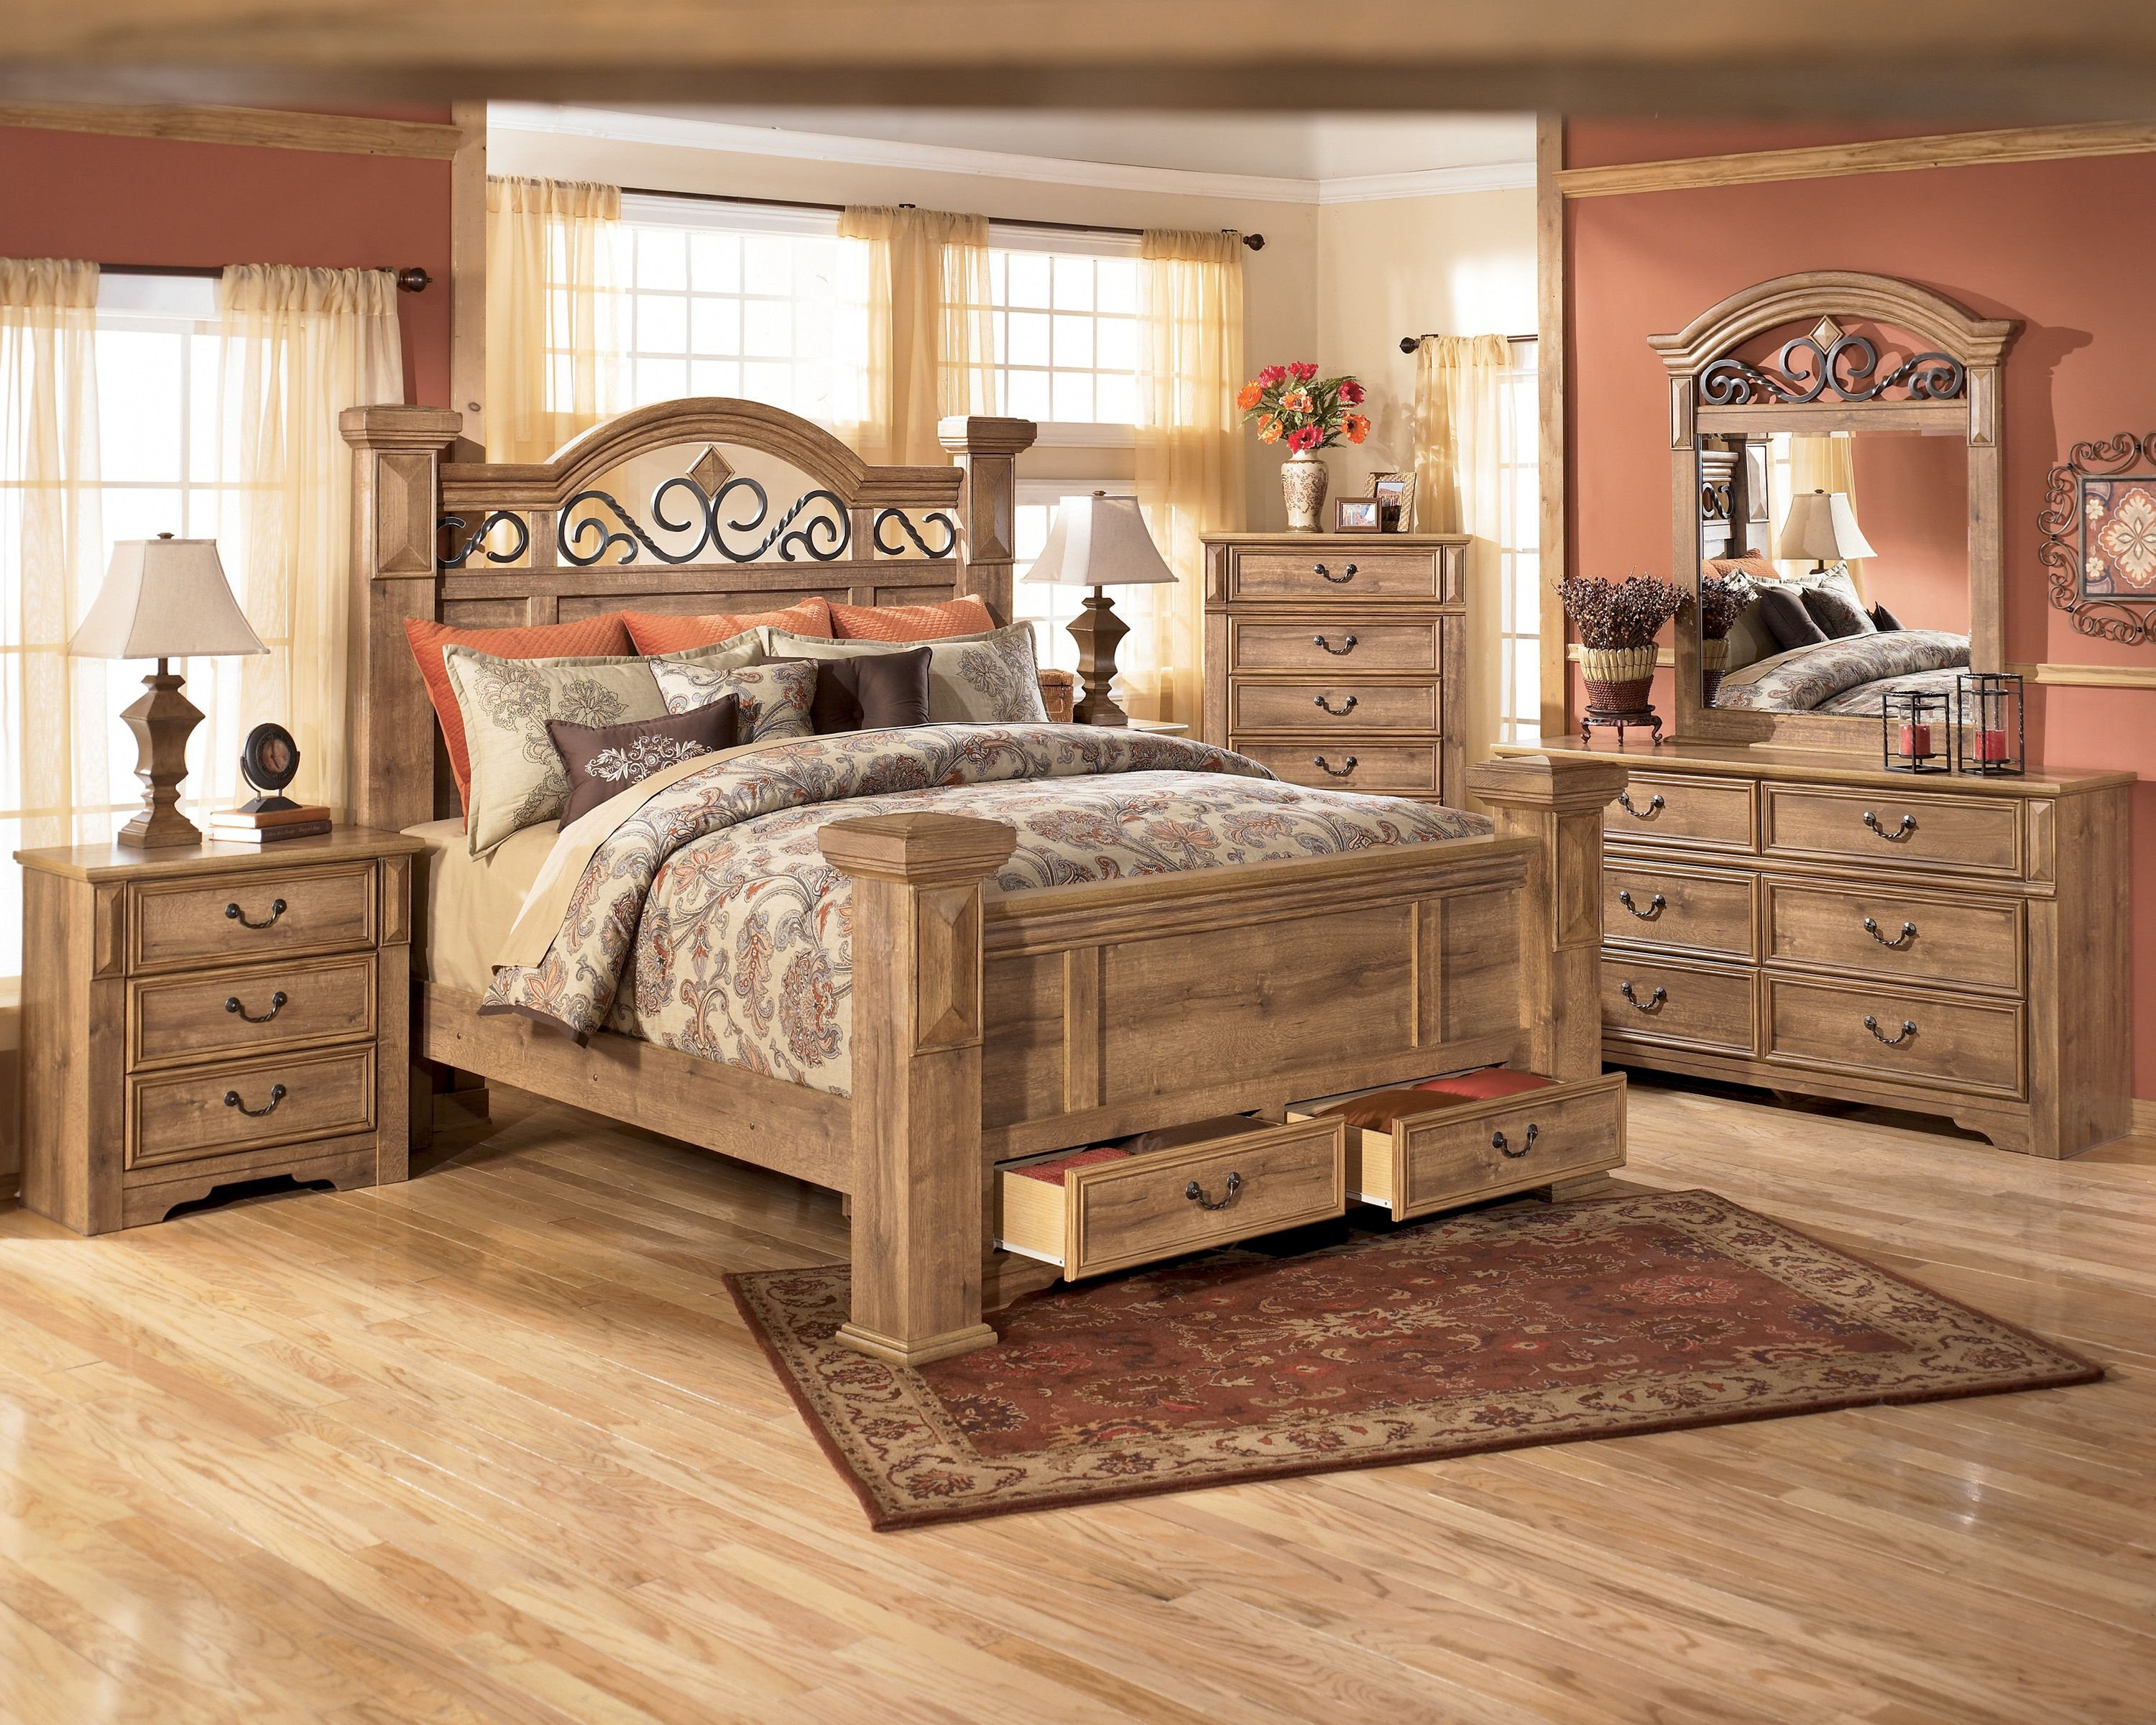 Ashley Bedroom Furniture Sale Unique Awesome Awesome Full Size Bed Set 89 Home Decorating